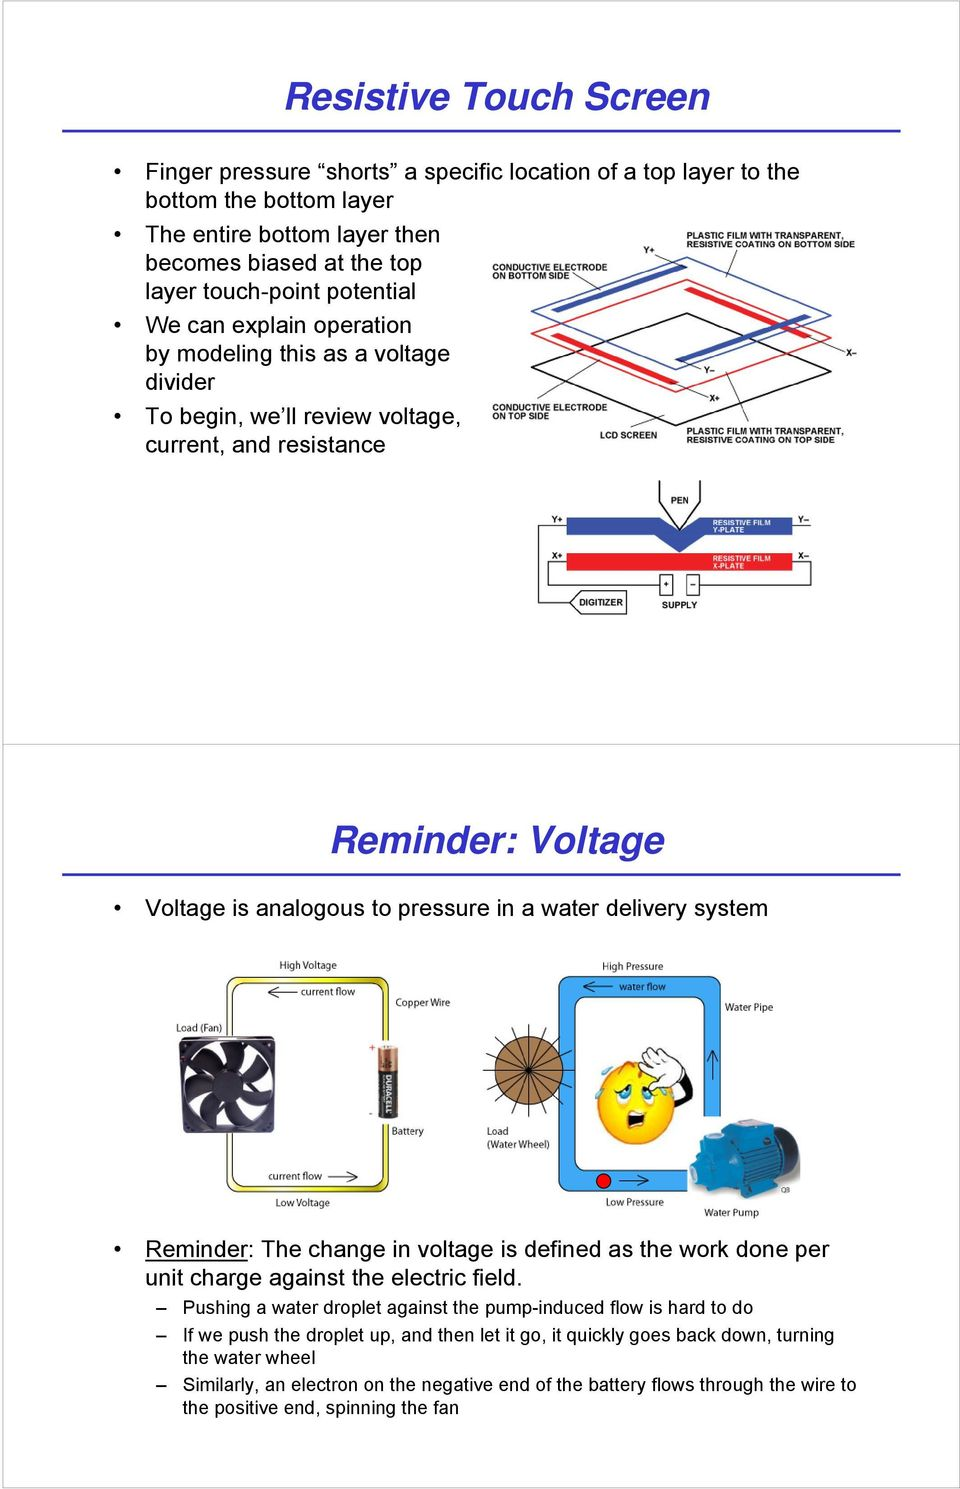 system Reminder: The change in voltage is defined as the work done per unit charge against the electric field.